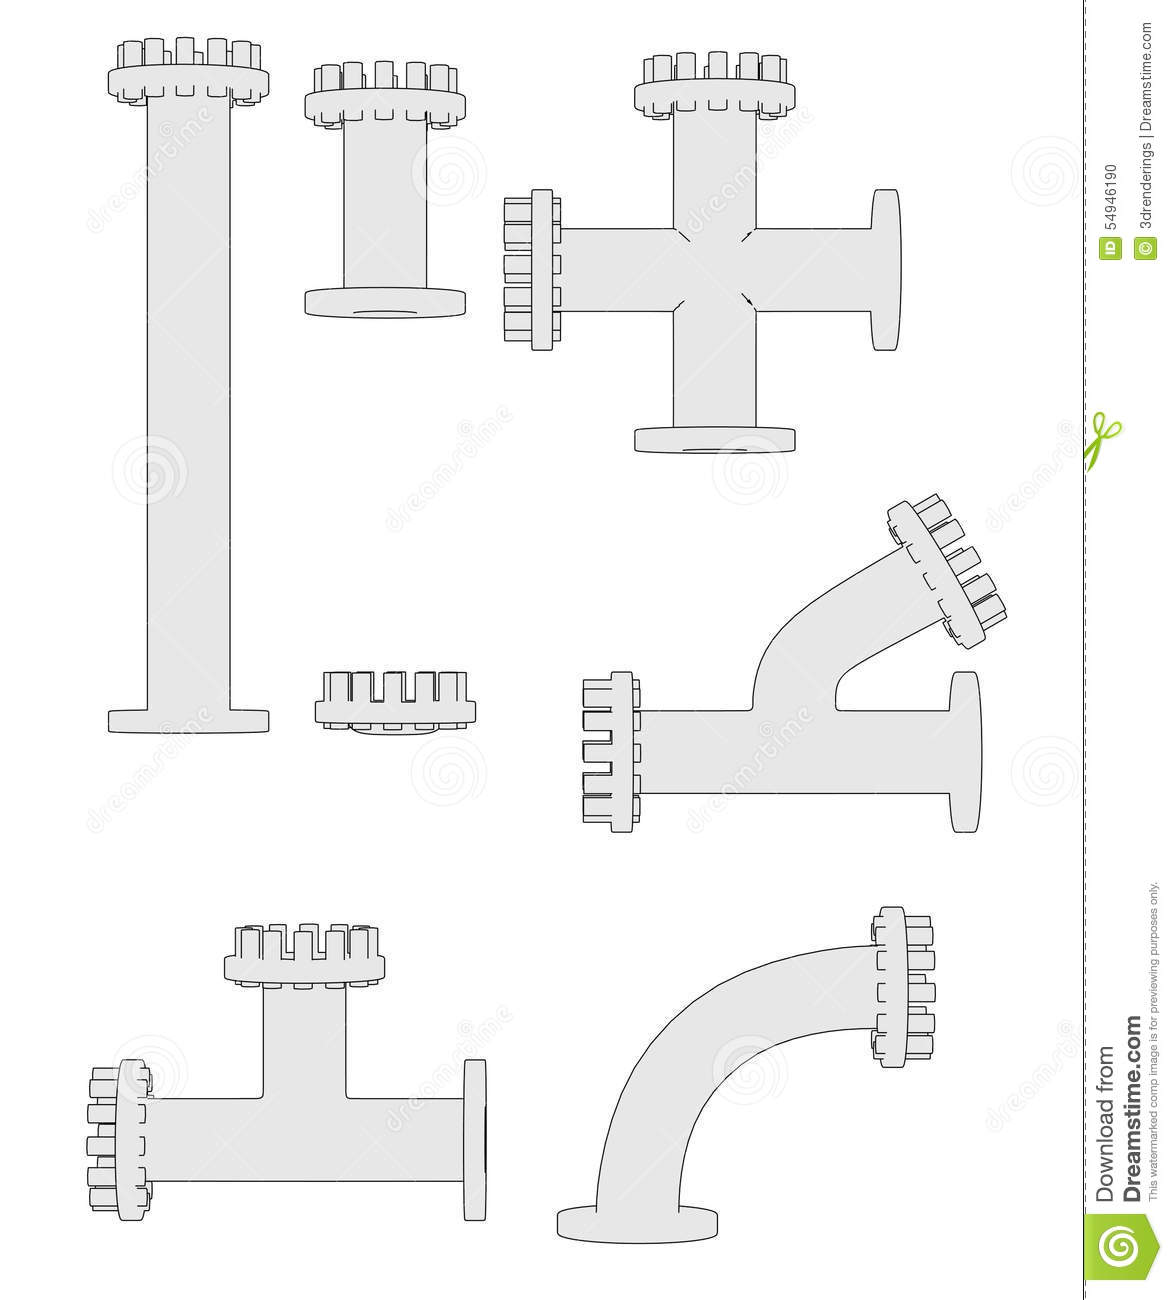 Industrial pipes stock illustration  Illustration of water - 54946190